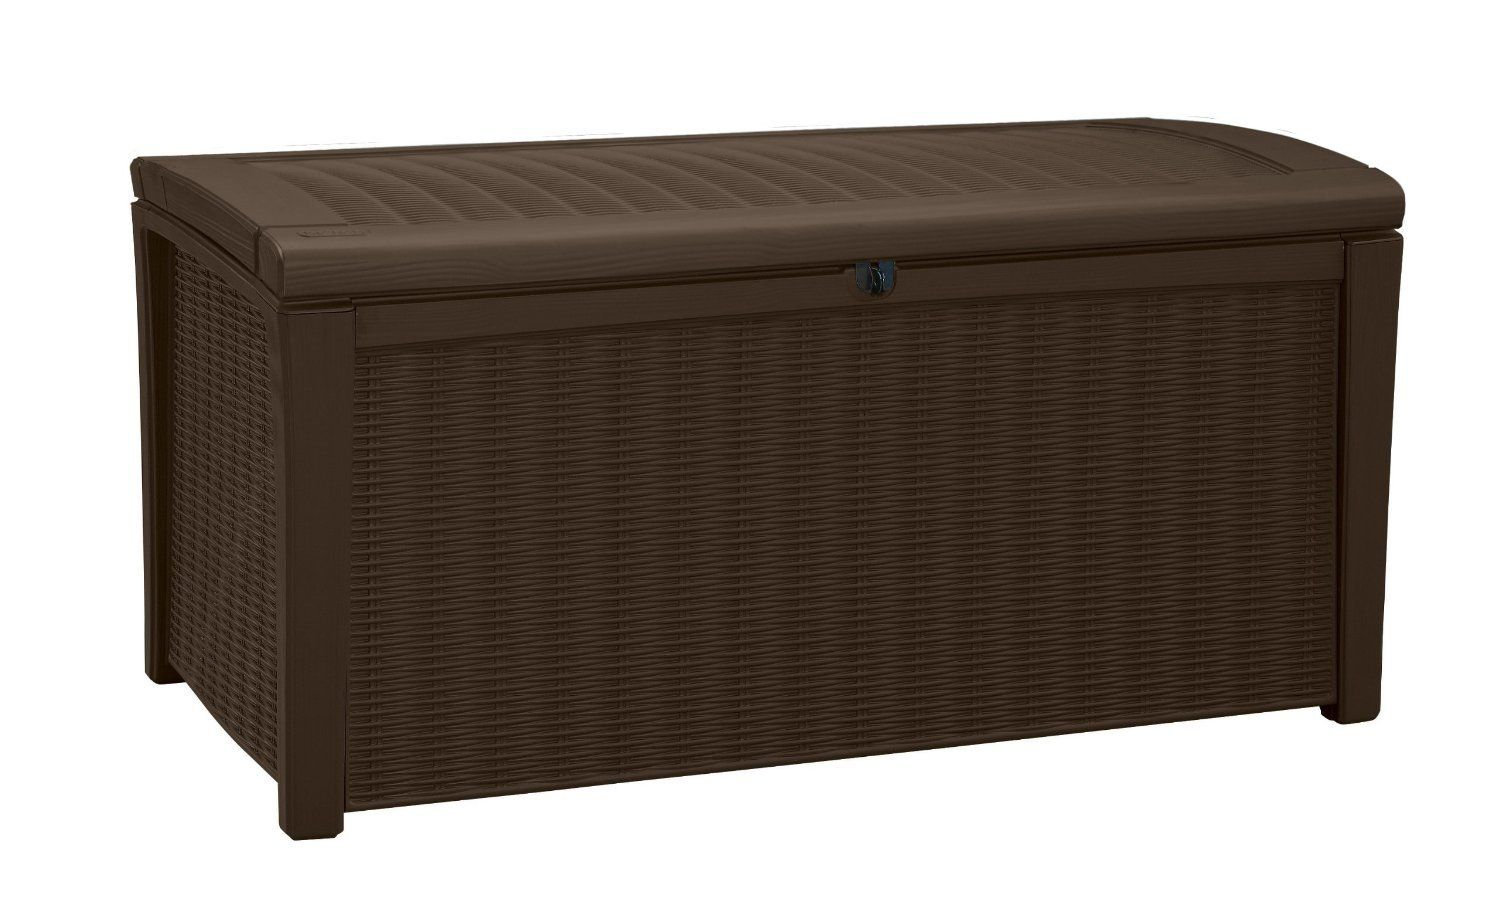 Deck Box For Patio Pool Storage Bench In Resin 110 Gallon Extra